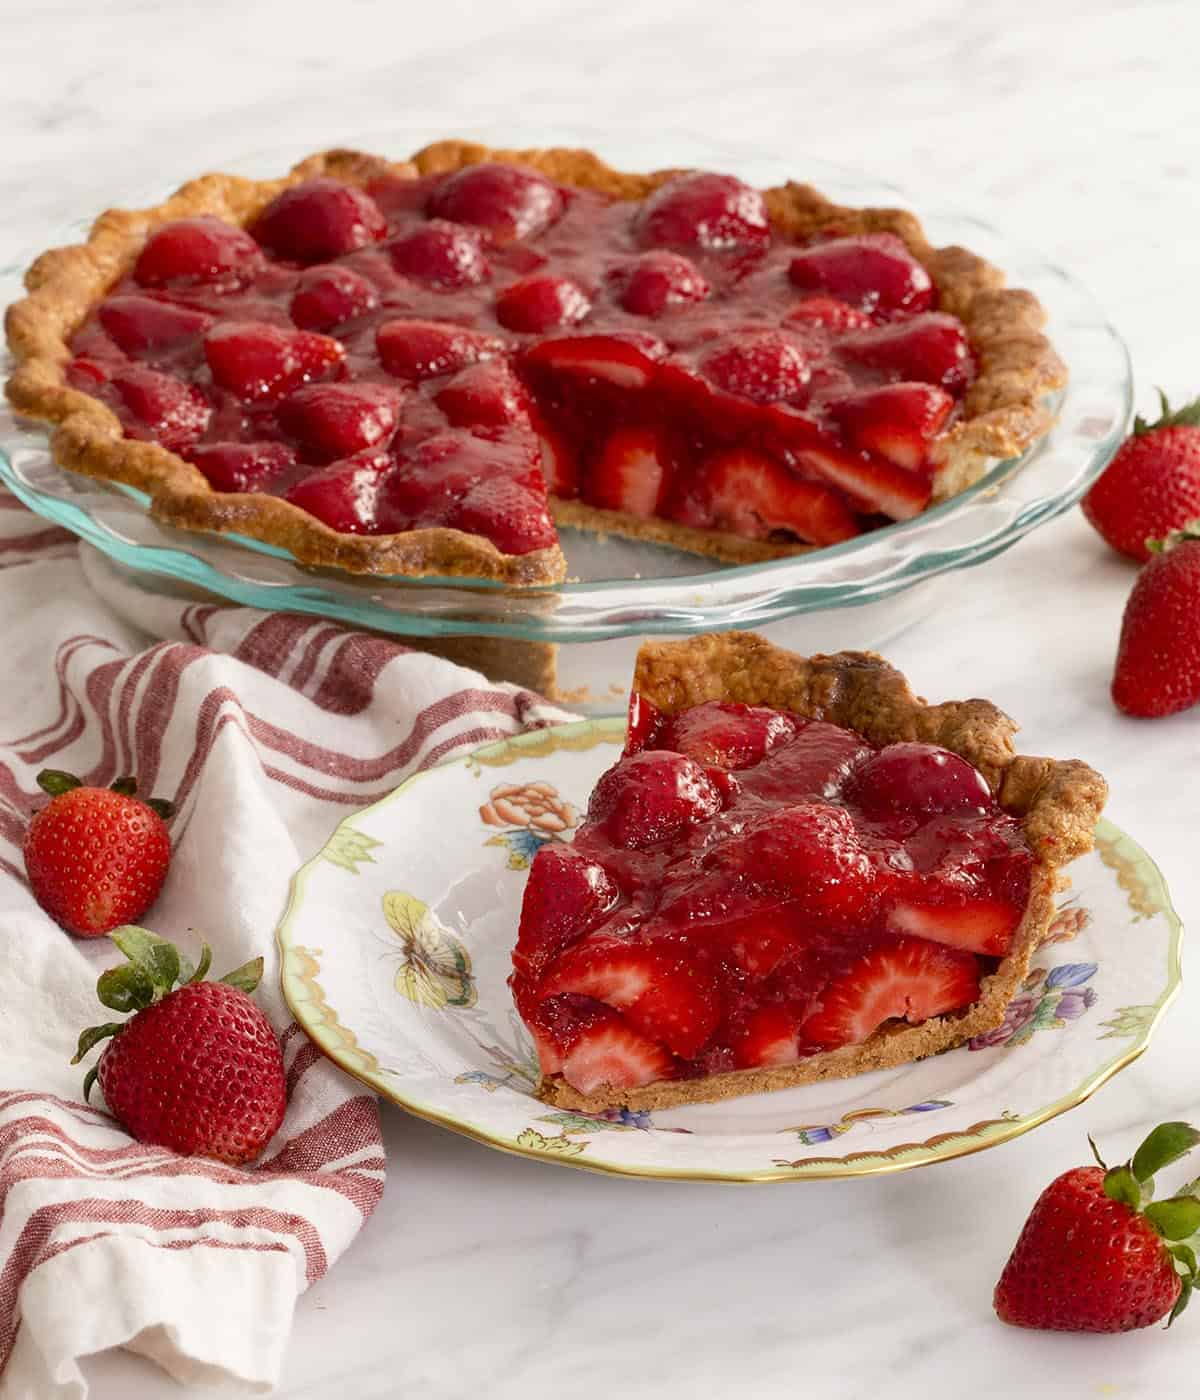 A fresh strawberry pie with a piece in the foreground on a white marble table.